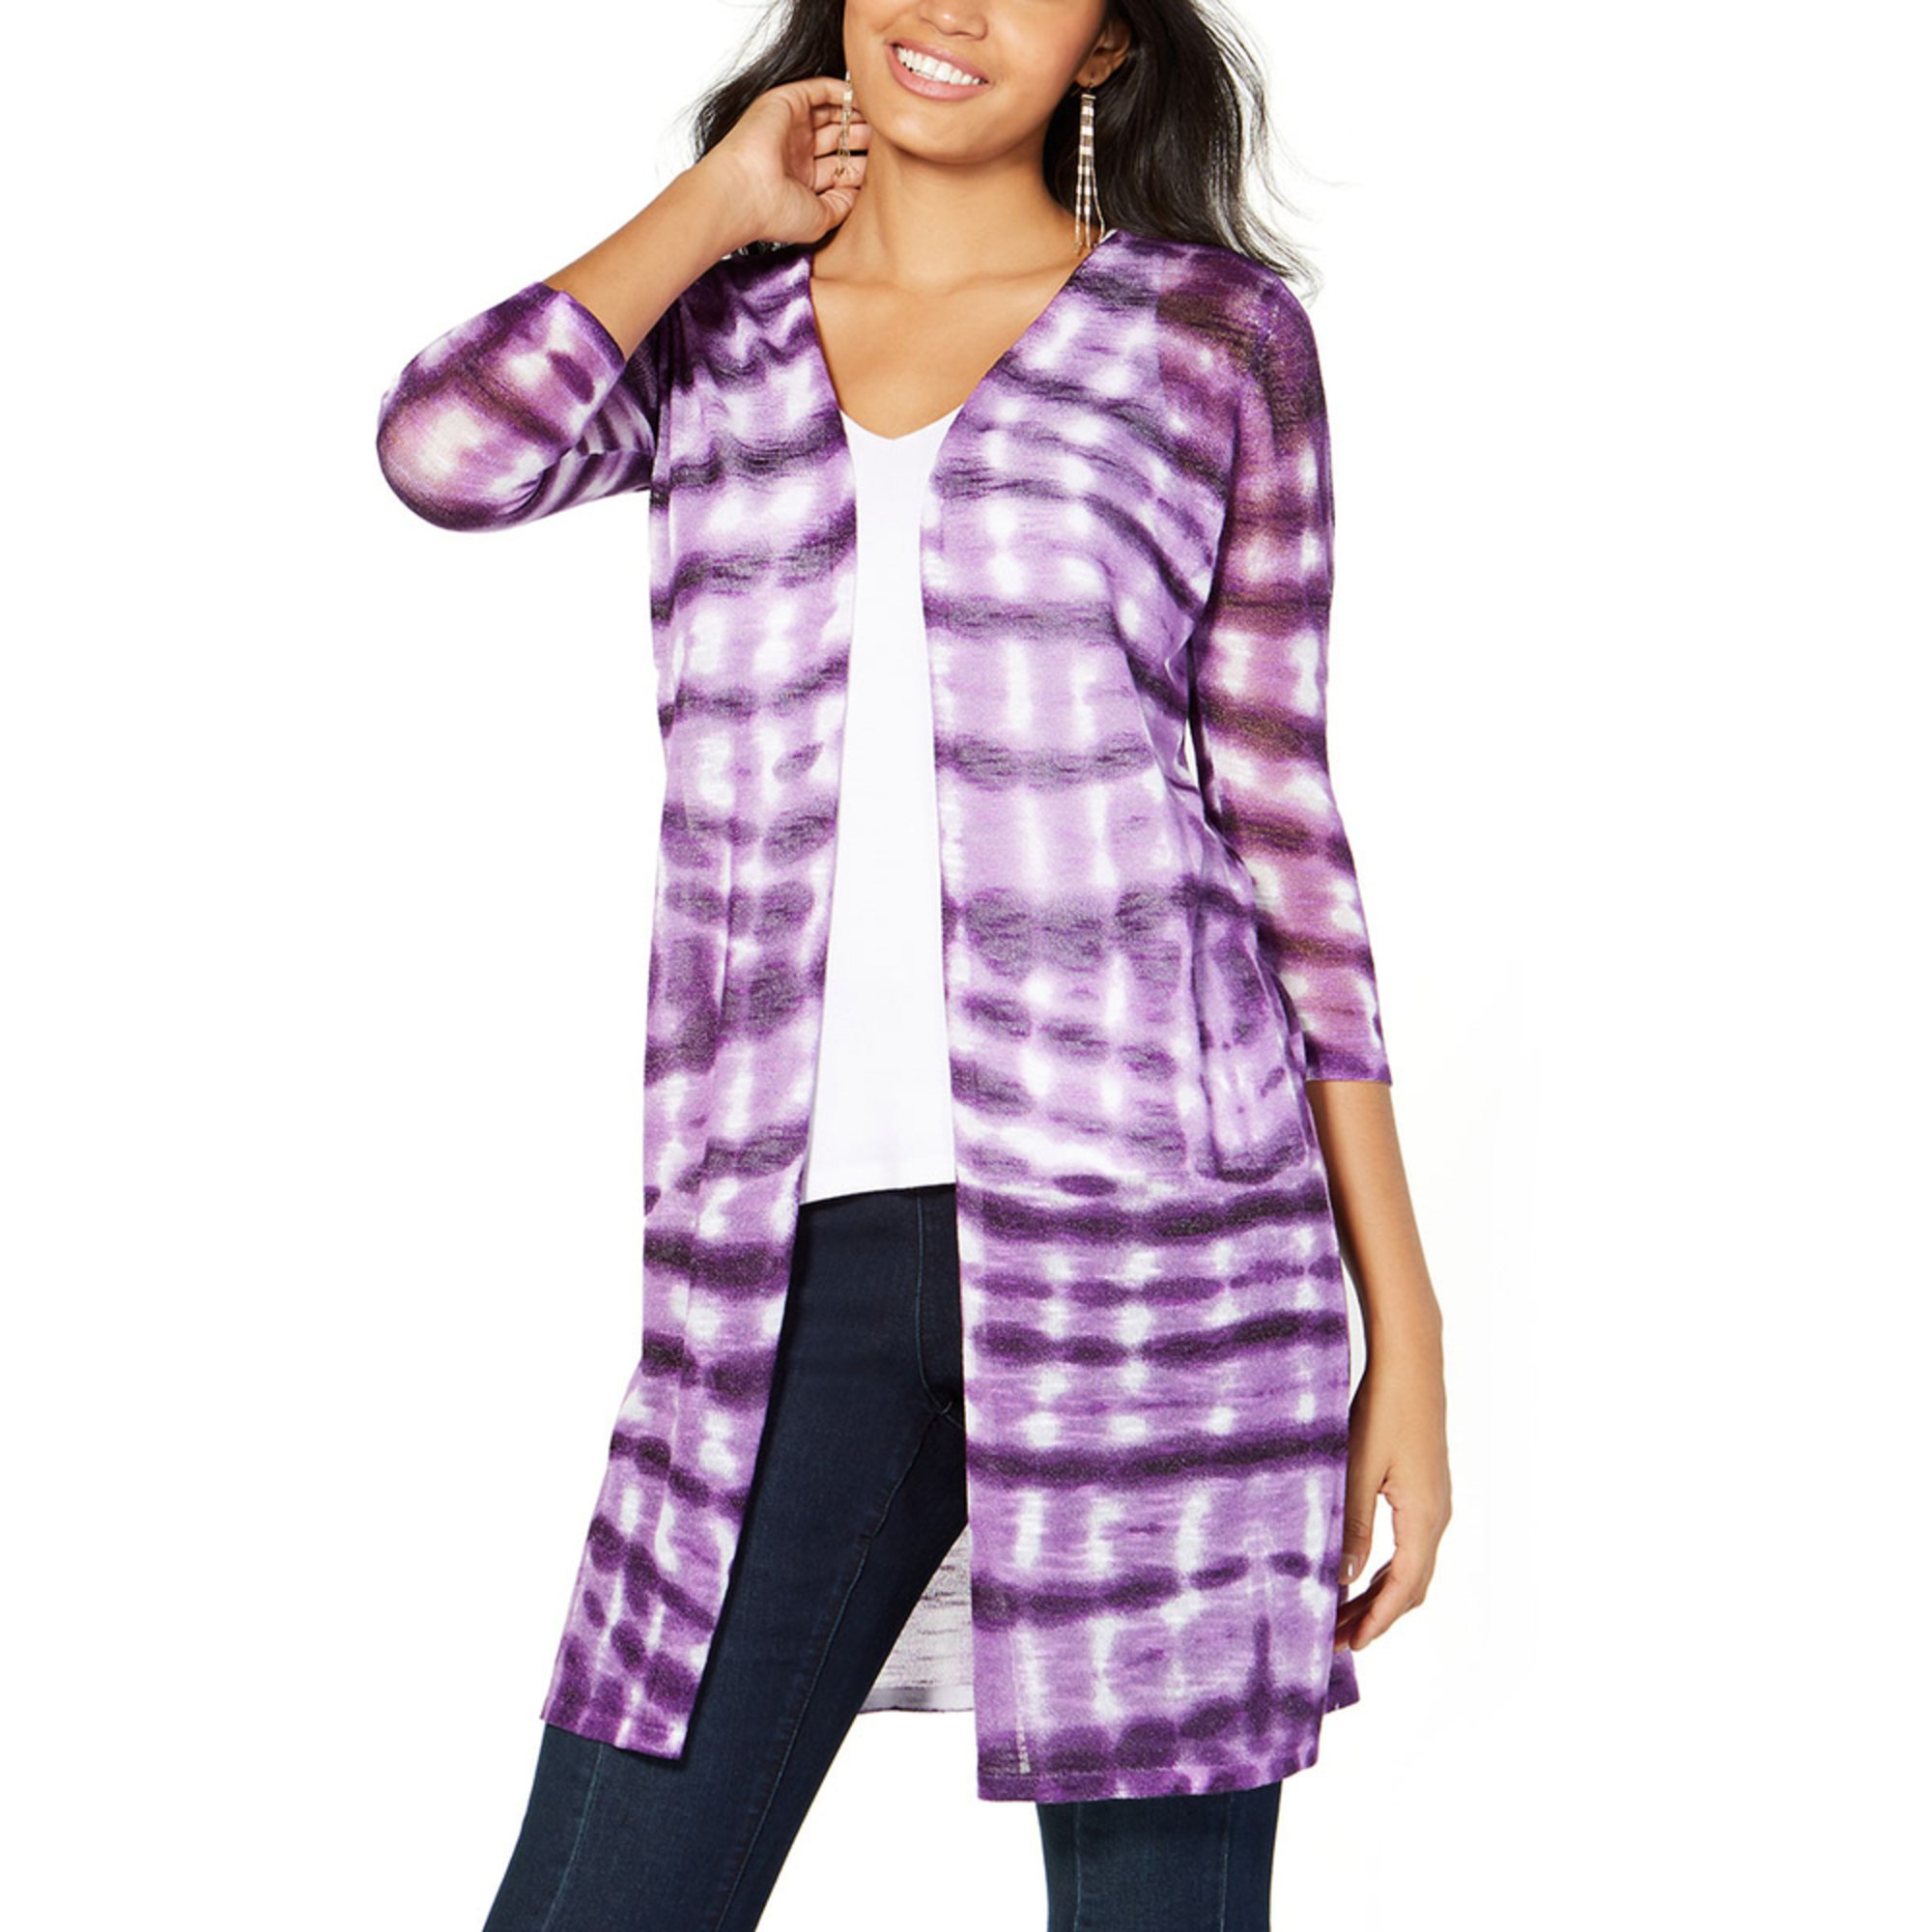 6f5b3298682 I.n.c. International Concepts Women's Tie Dye Cardigan | Sweaters ...